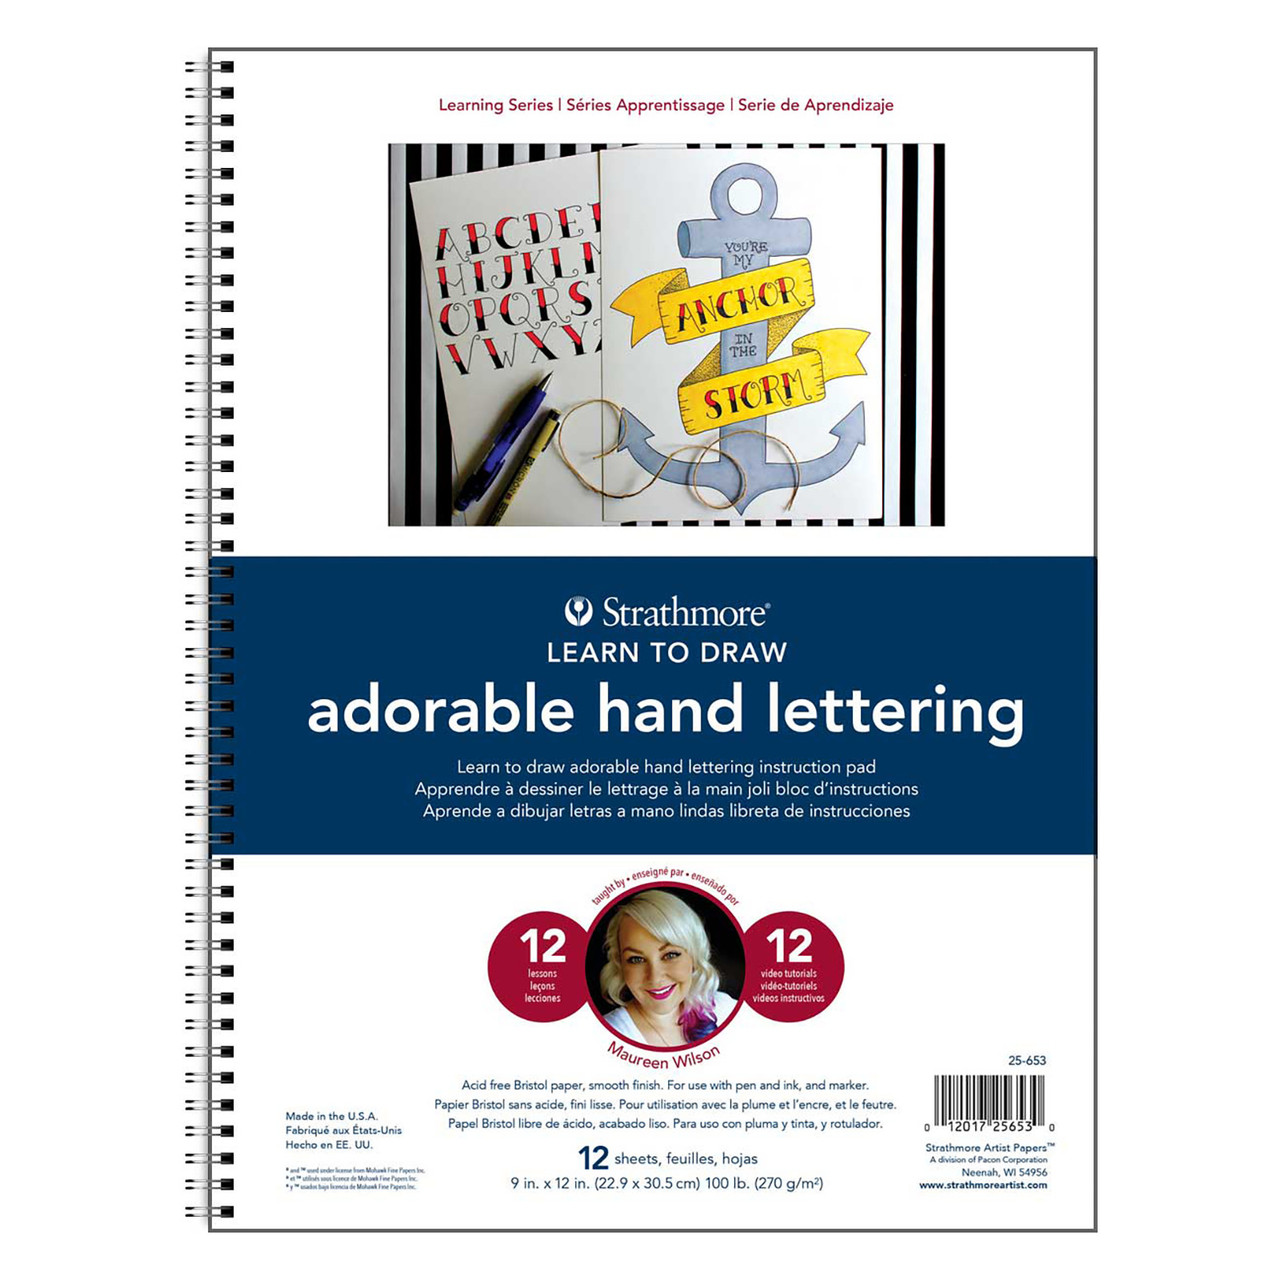 Learning Series Adorable Hand Lettering Pad 9 x 12